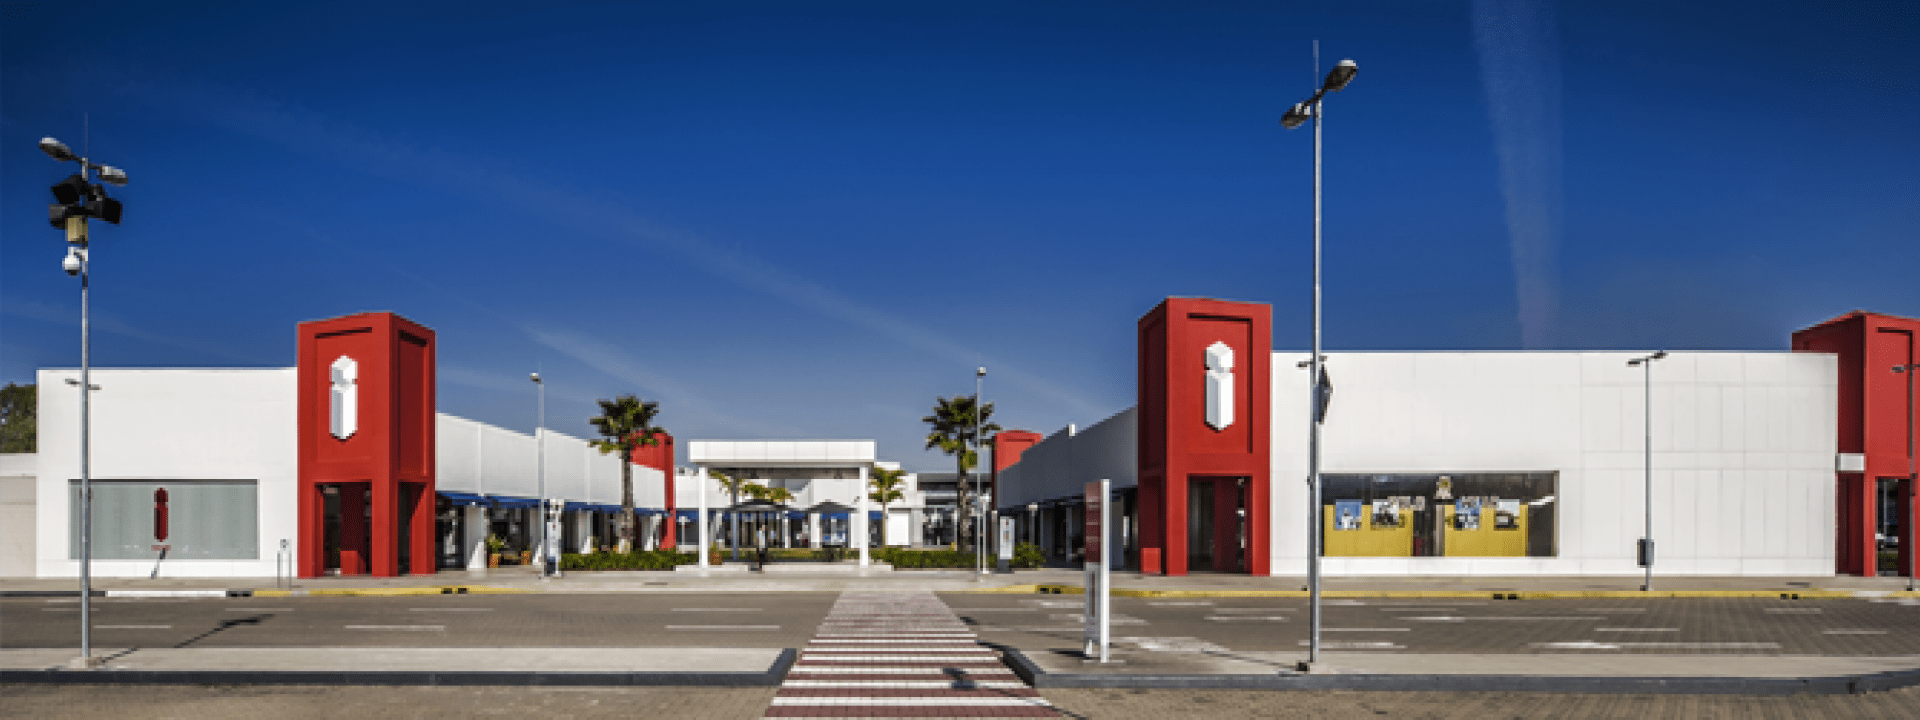 Phoenix Premium Outlets Chandler 2021 All You Need To Know Before You Go With Photos Tripadvisor